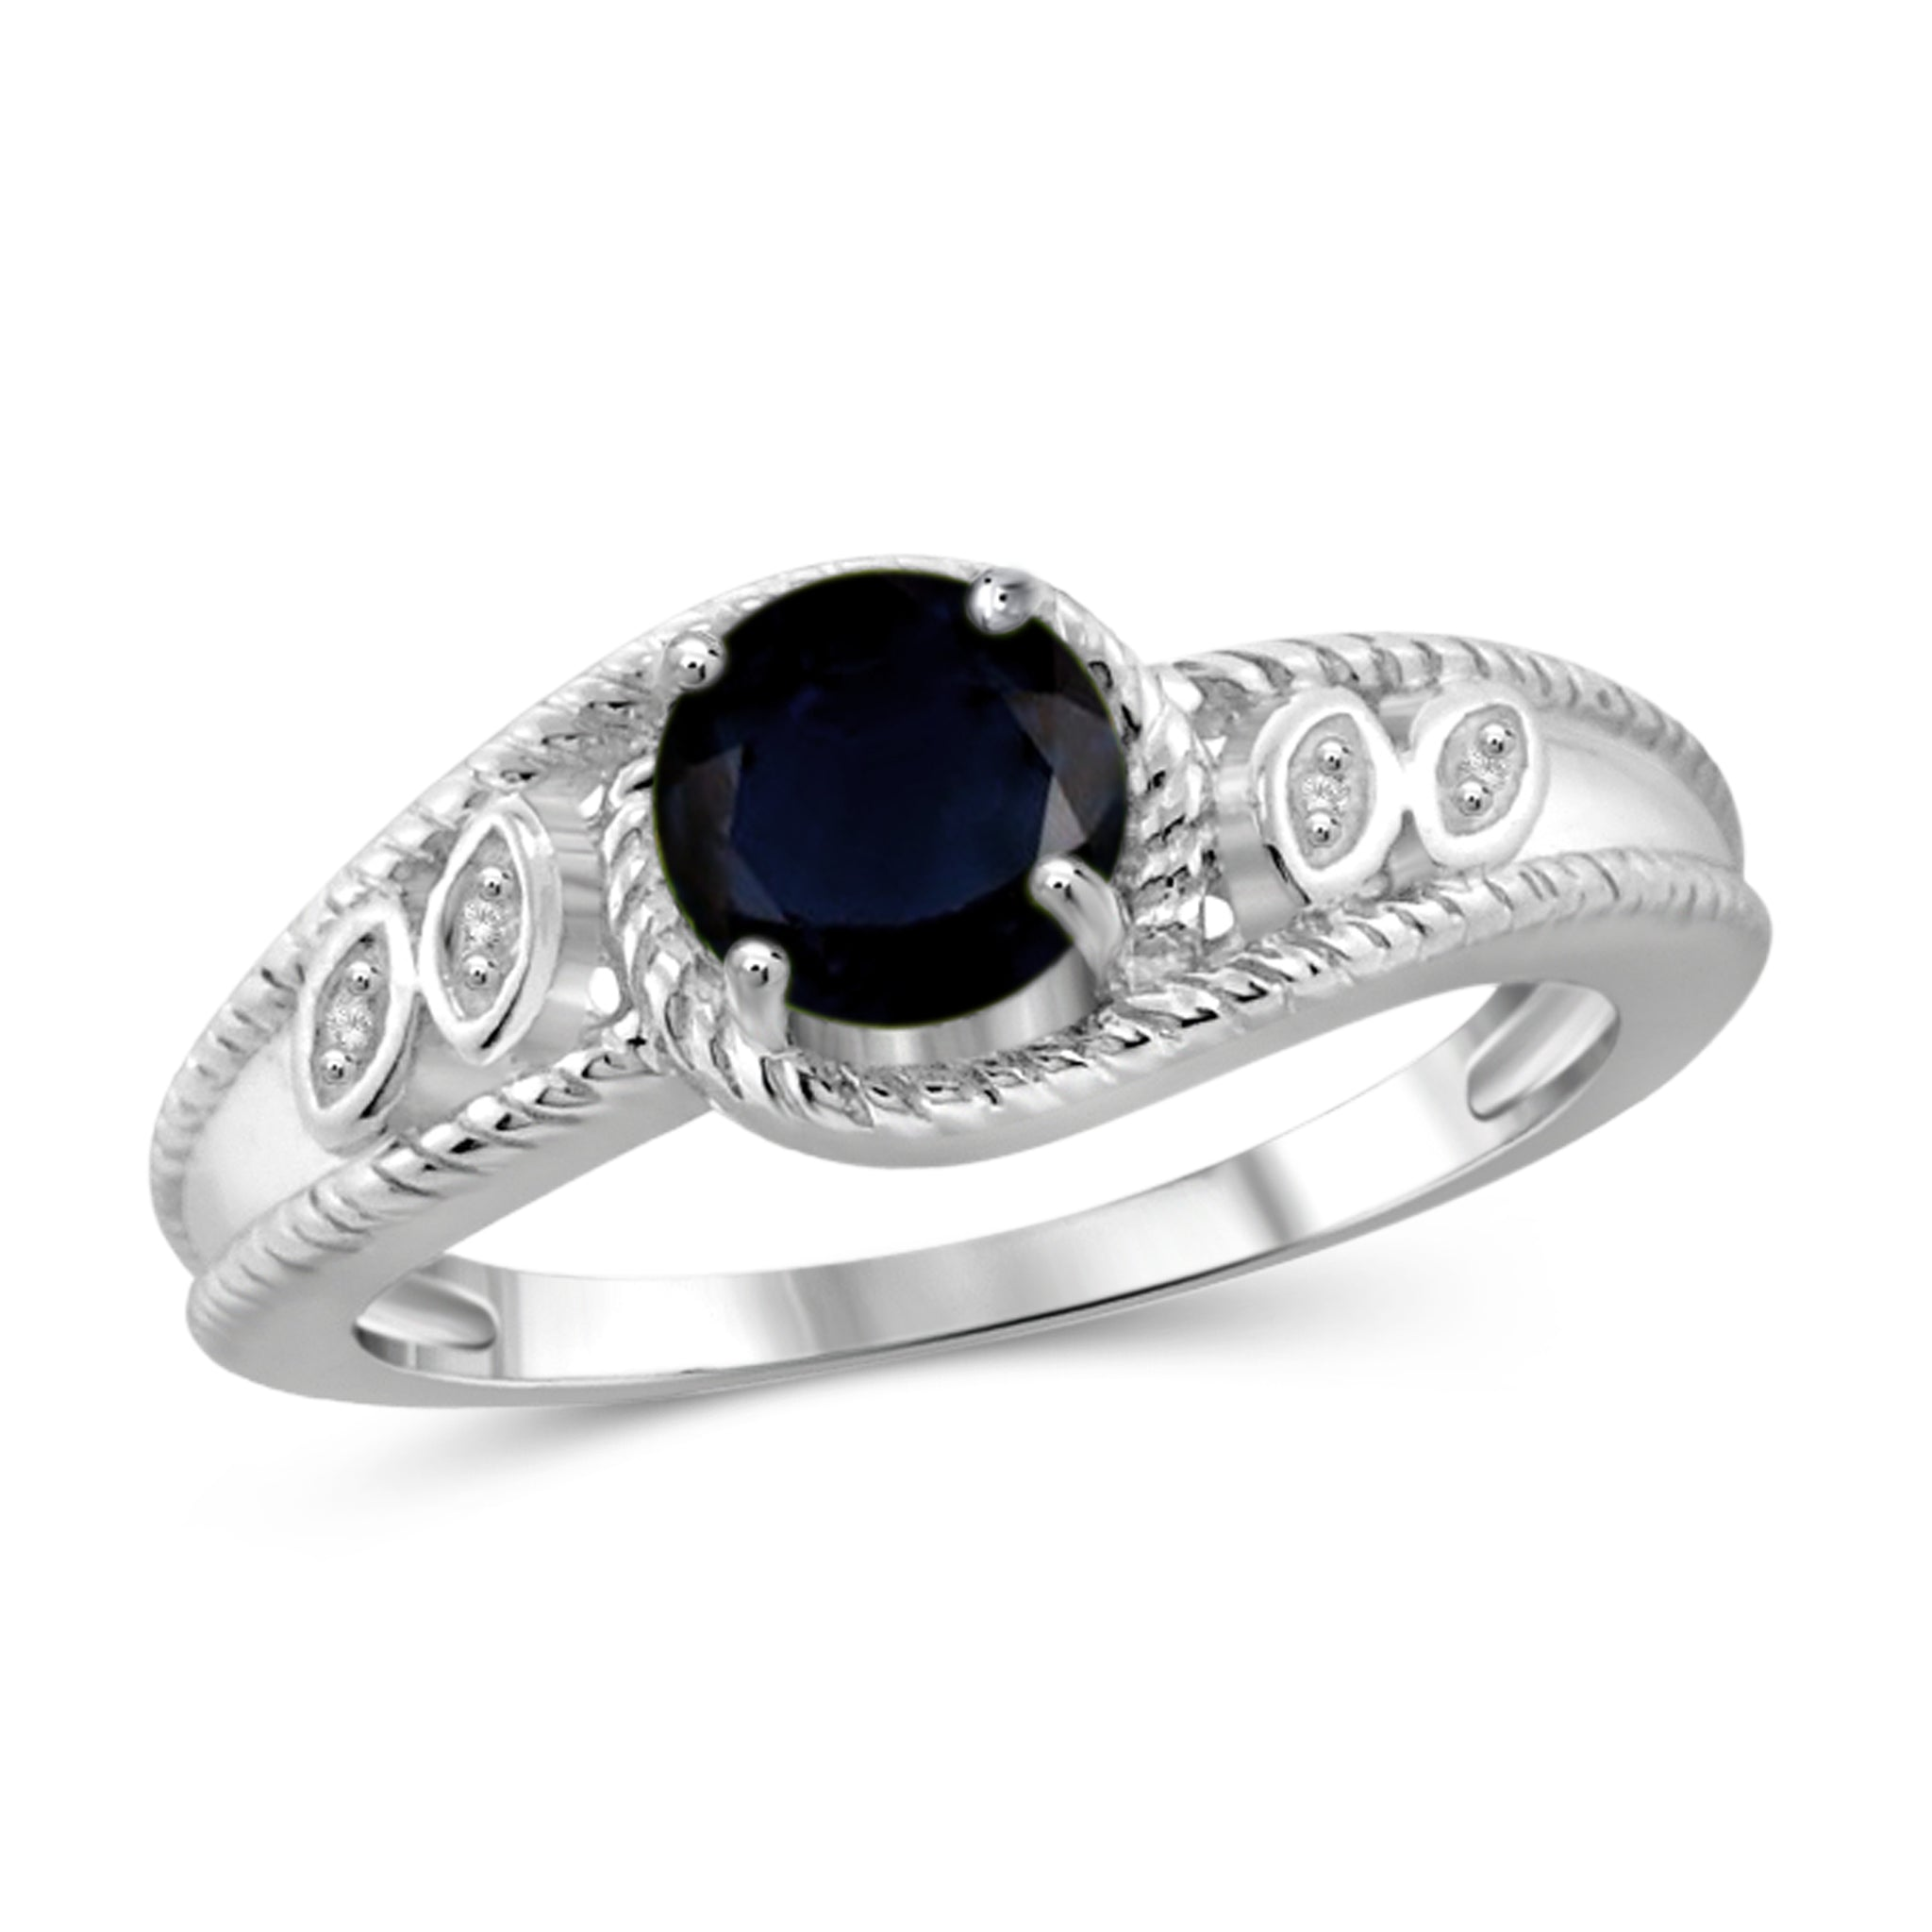 JewelonFire 1 1/5 Carat T.G.W. Sapphire and White Diamond Accent Sterling Silver Ring- Assorted Colors